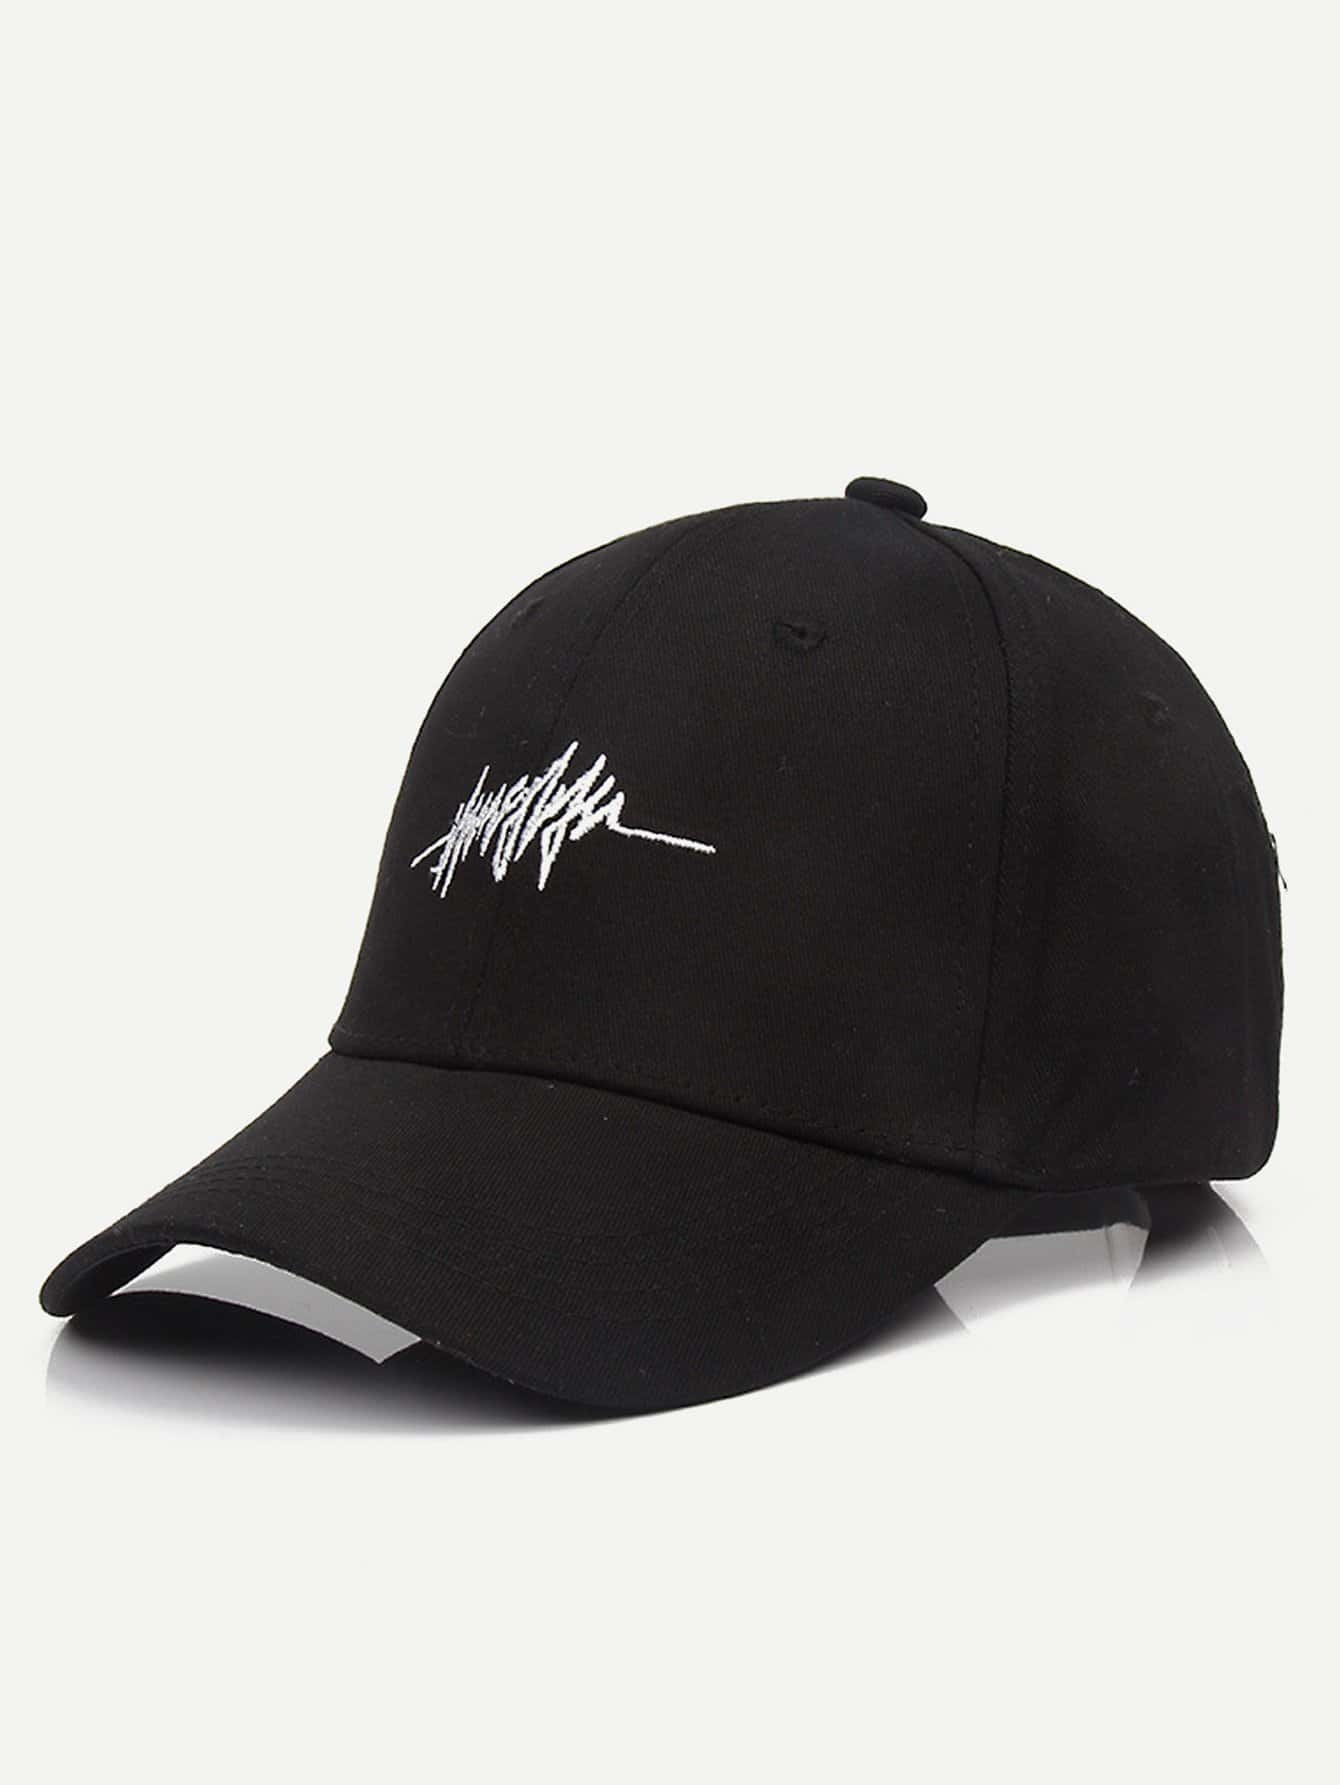 Men Embroidery Baseball Cap стенка модерн 6